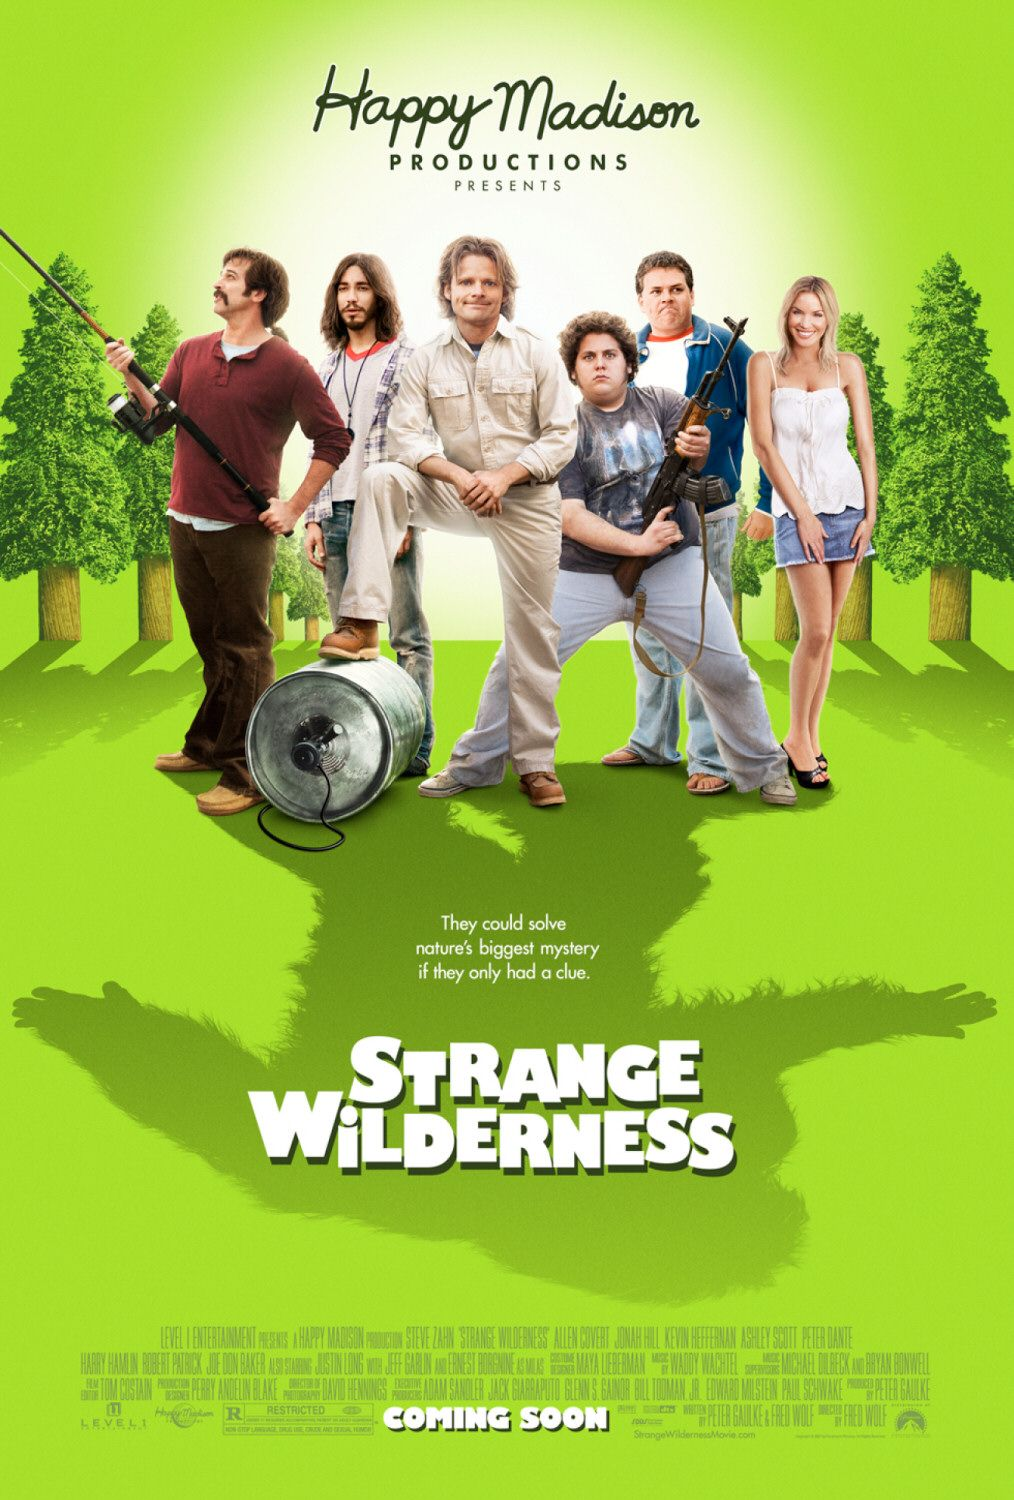 Strange Wilderness - they could solve nature's biggest mystery if they only had a clue - Steve Zahn - Allen Covert - Jonah Hill - Kevin Hefferman - Ashley Scott - Peter Dante - Harry Hamlin - Robert Patrick - Joe Don Baker - Justin Long - Jeff Garlin - Ernest Borgnine - film poster